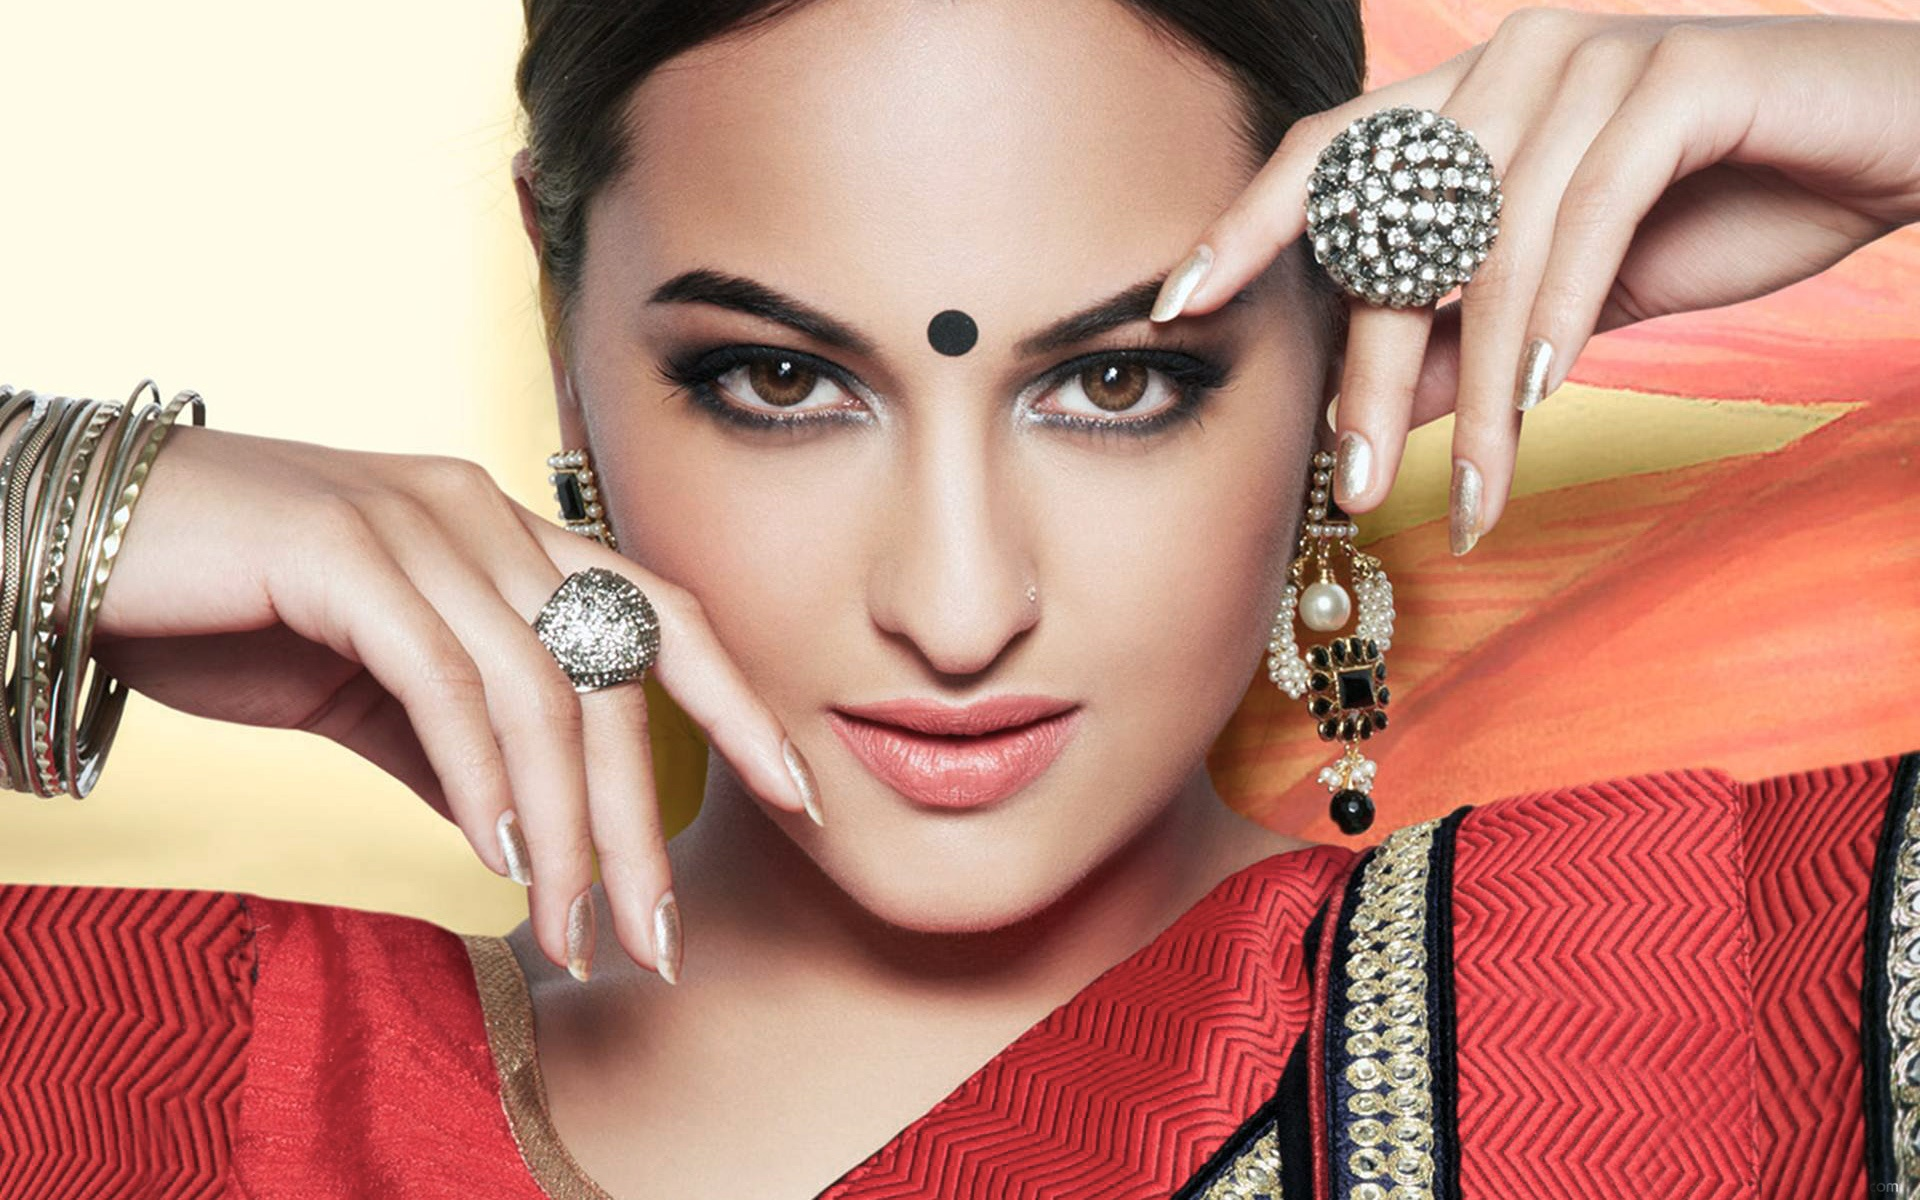 Sonakshi Sinha Bollywood Actress Wallpapers In Jpg Format For Free